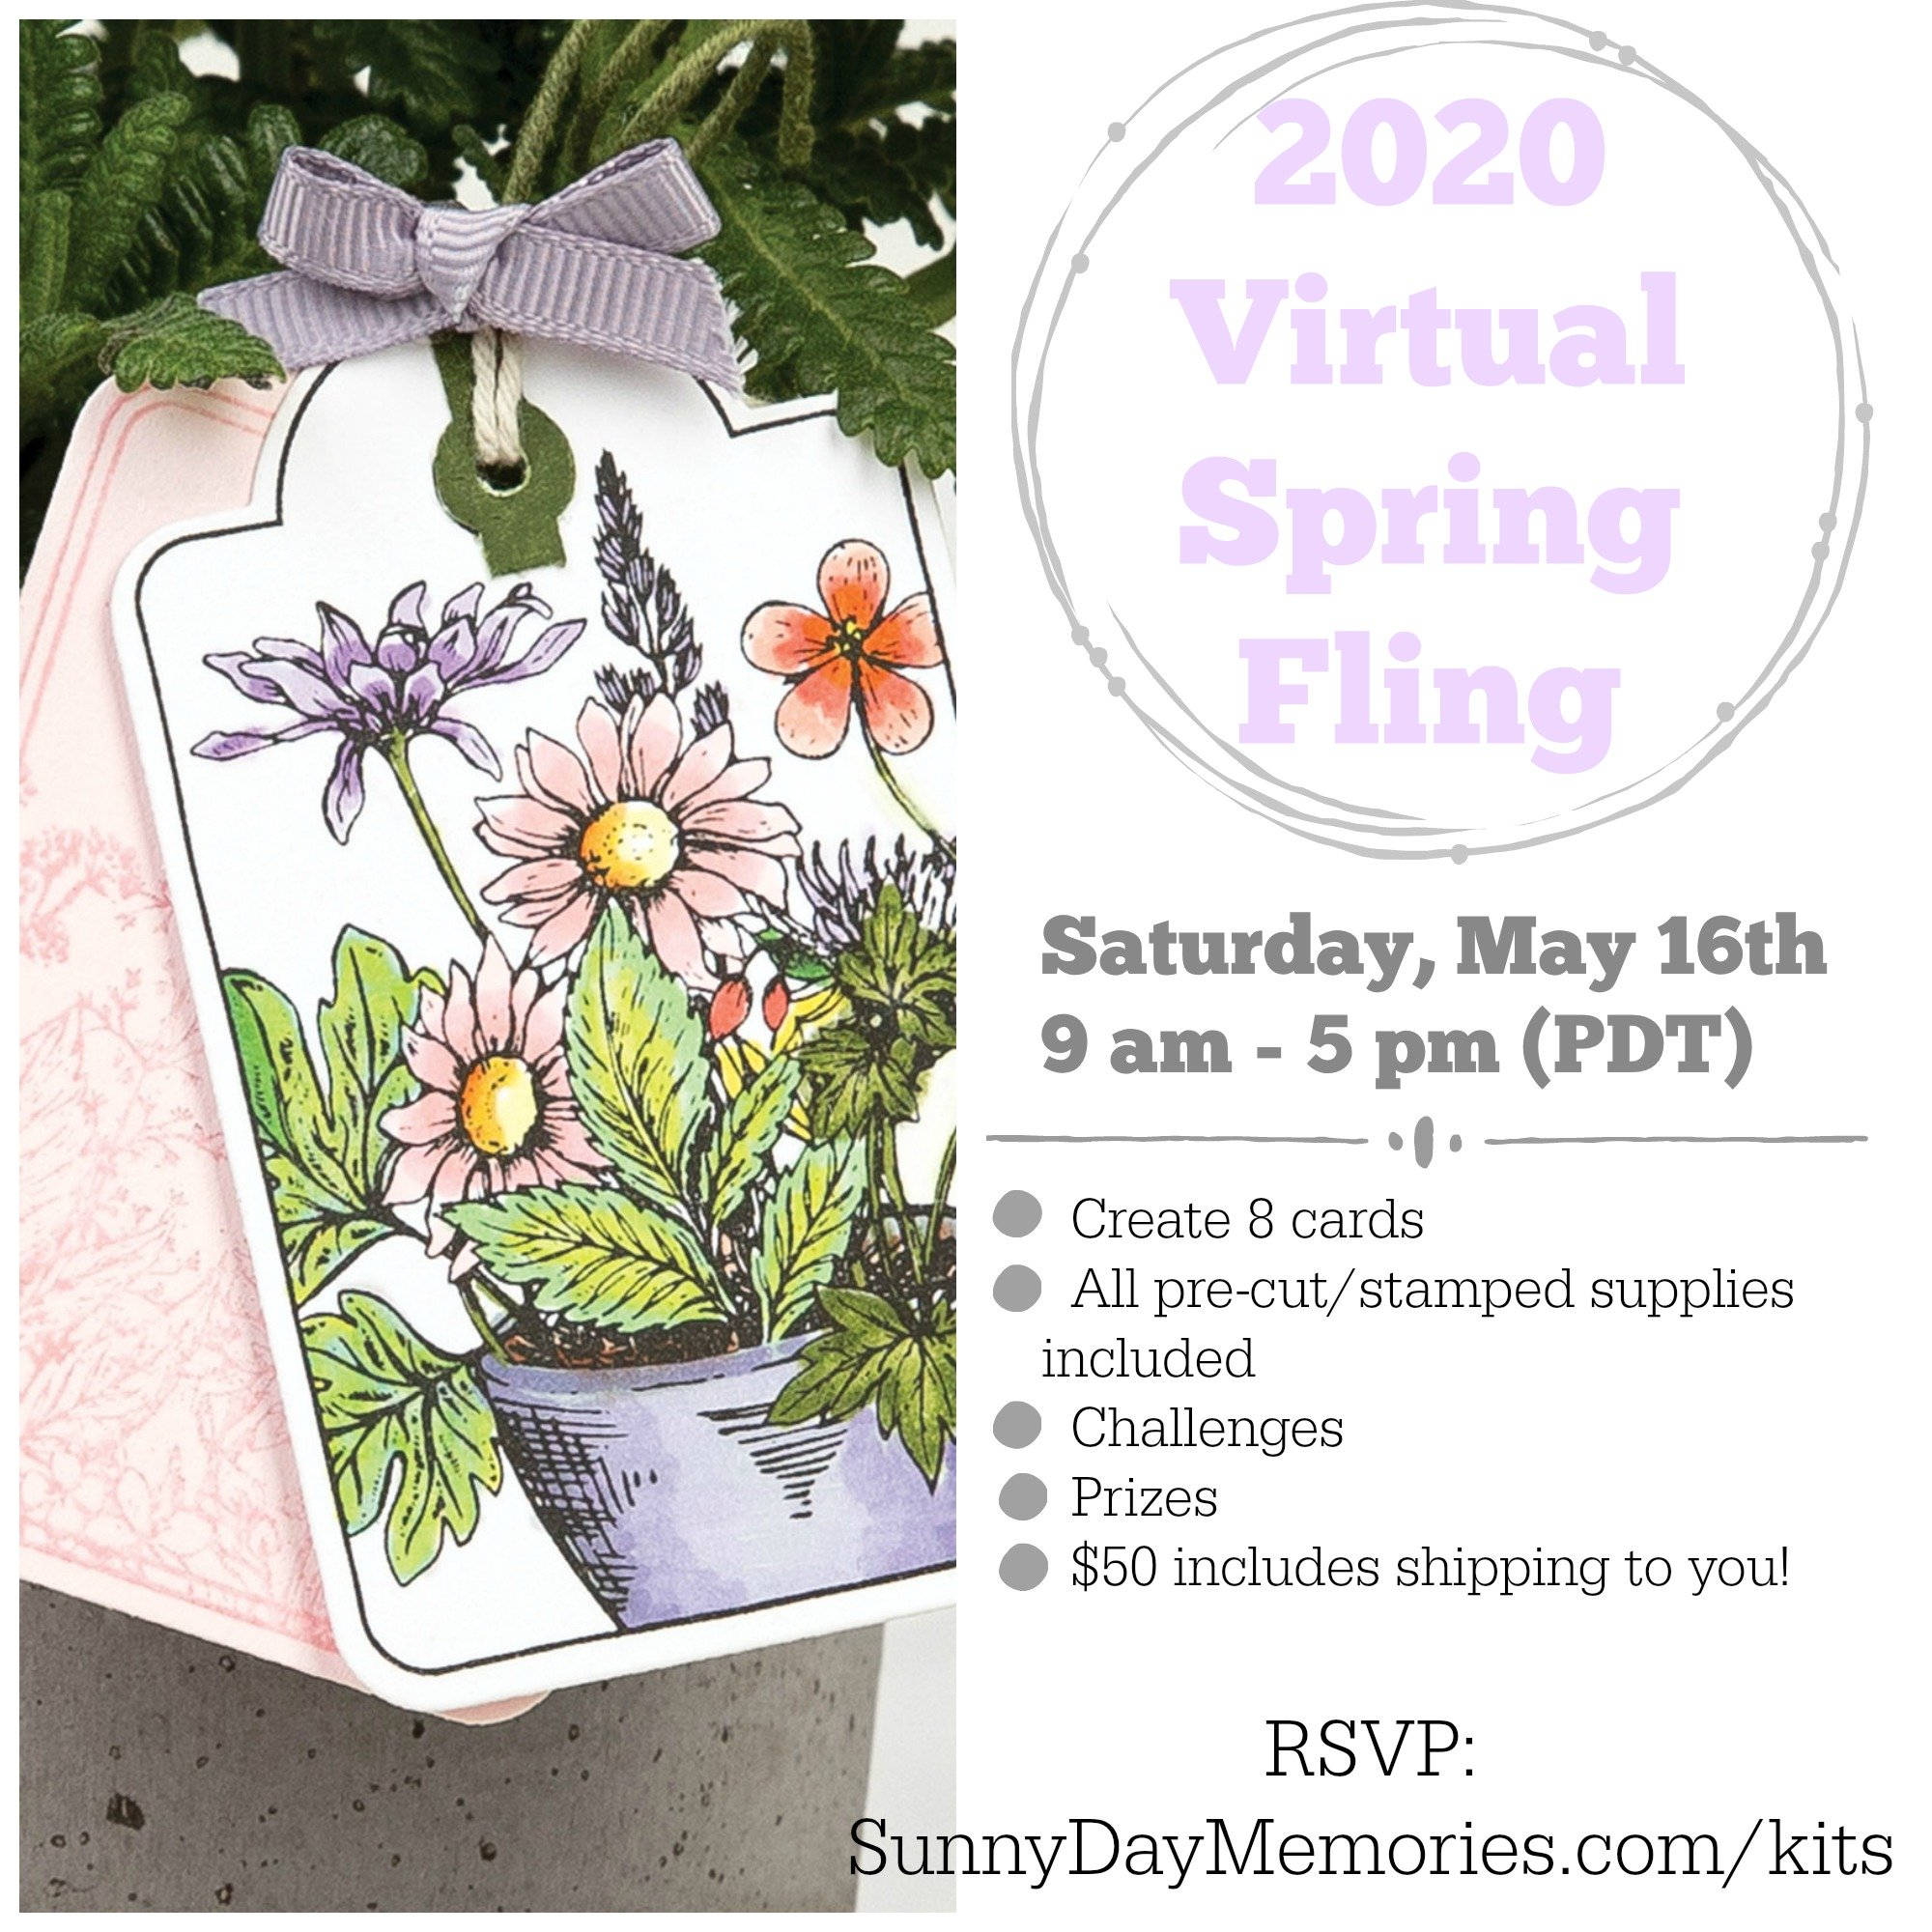 2020 Virtual Spring Fling Event